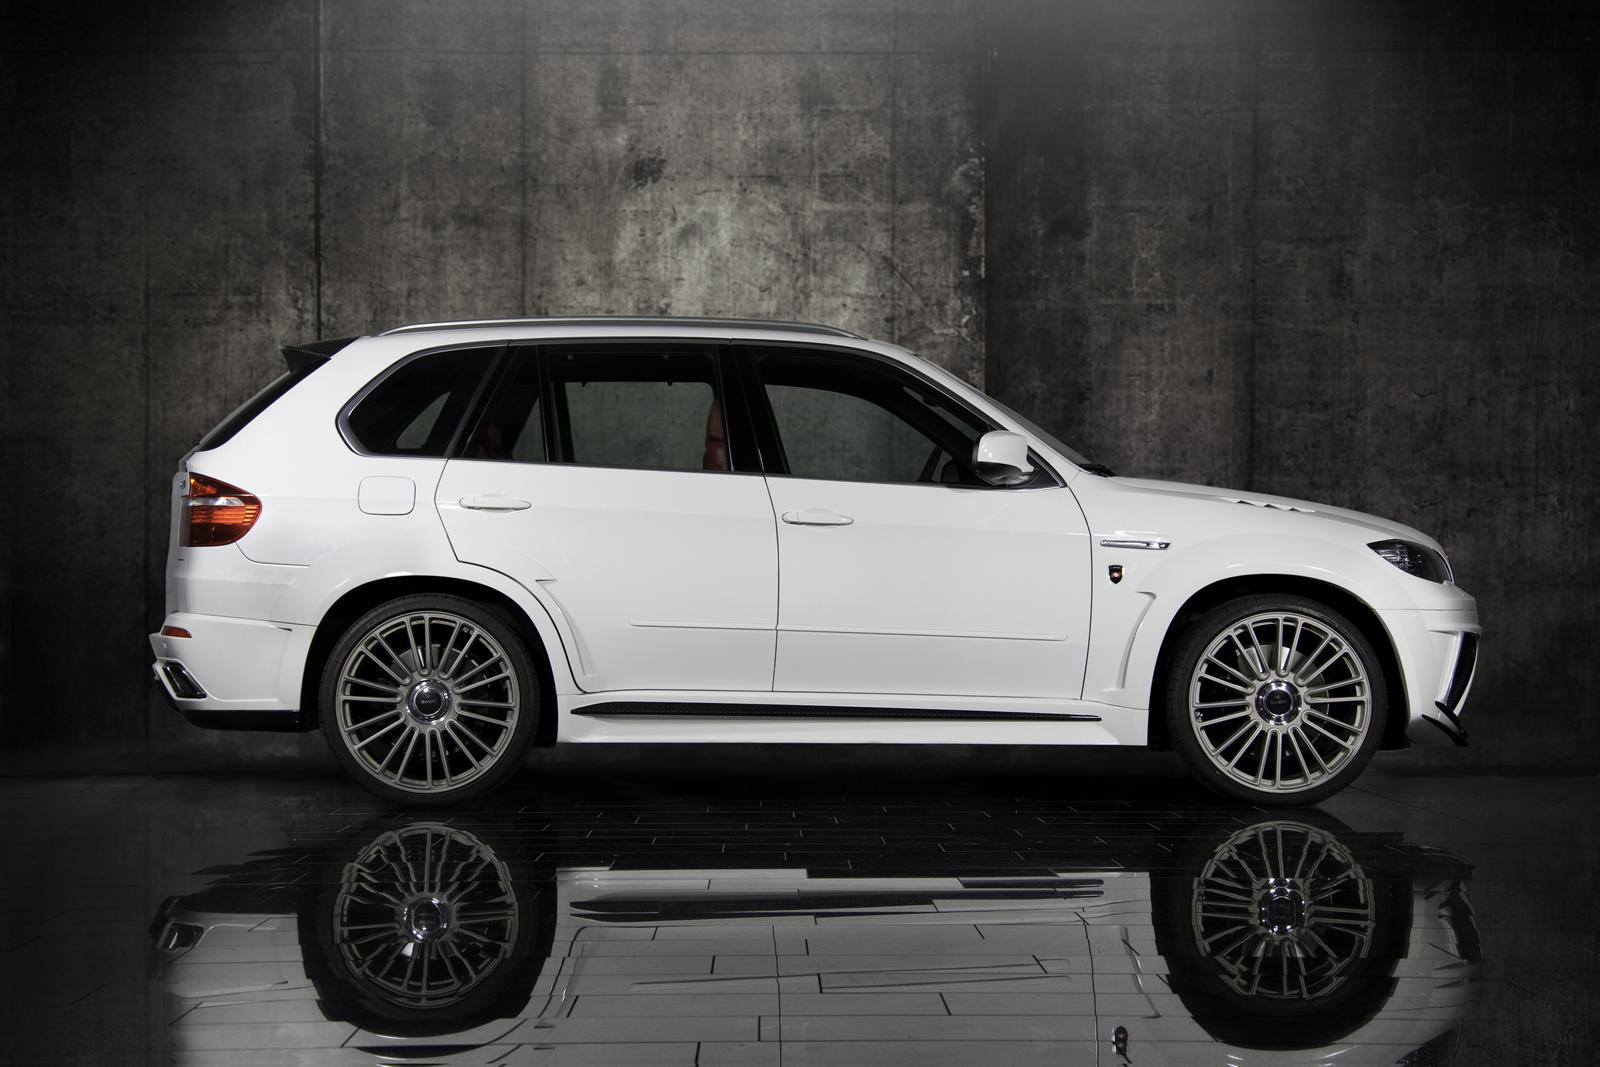 2010 bmw x5 tuned by mansory new car used car reviews picture. Black Bedroom Furniture Sets. Home Design Ideas